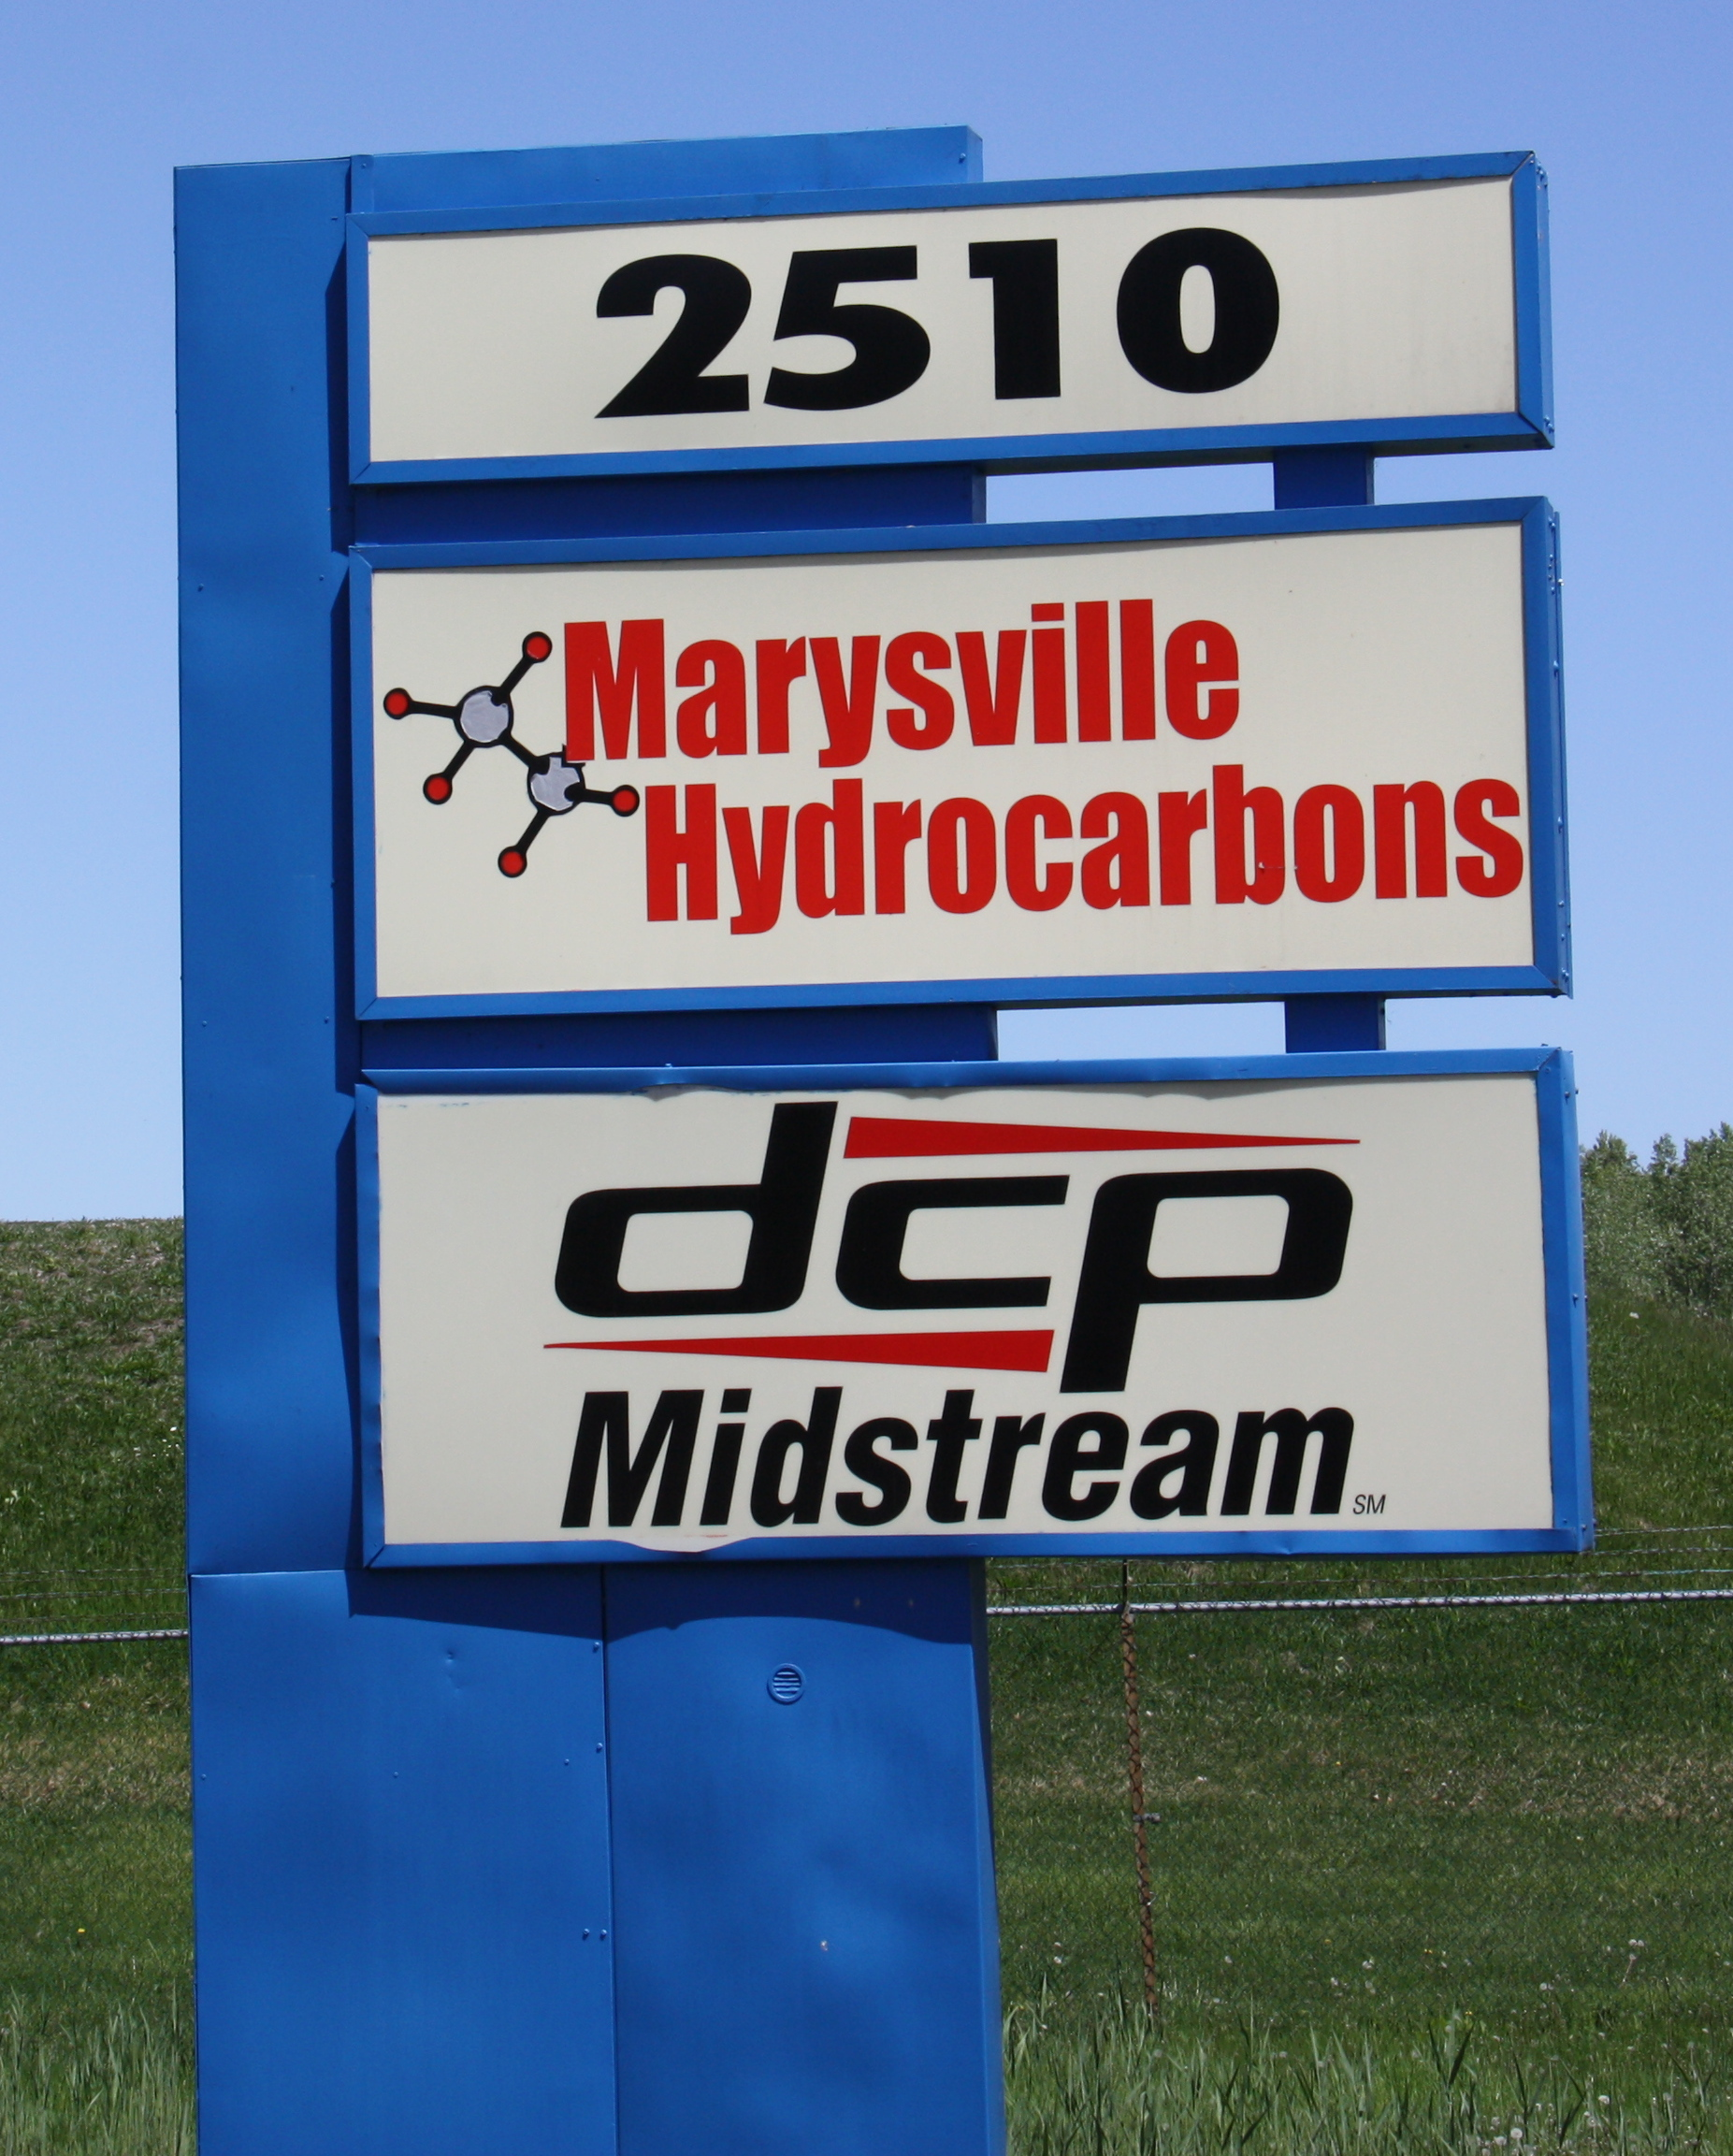 Marysville Hydrocarbons